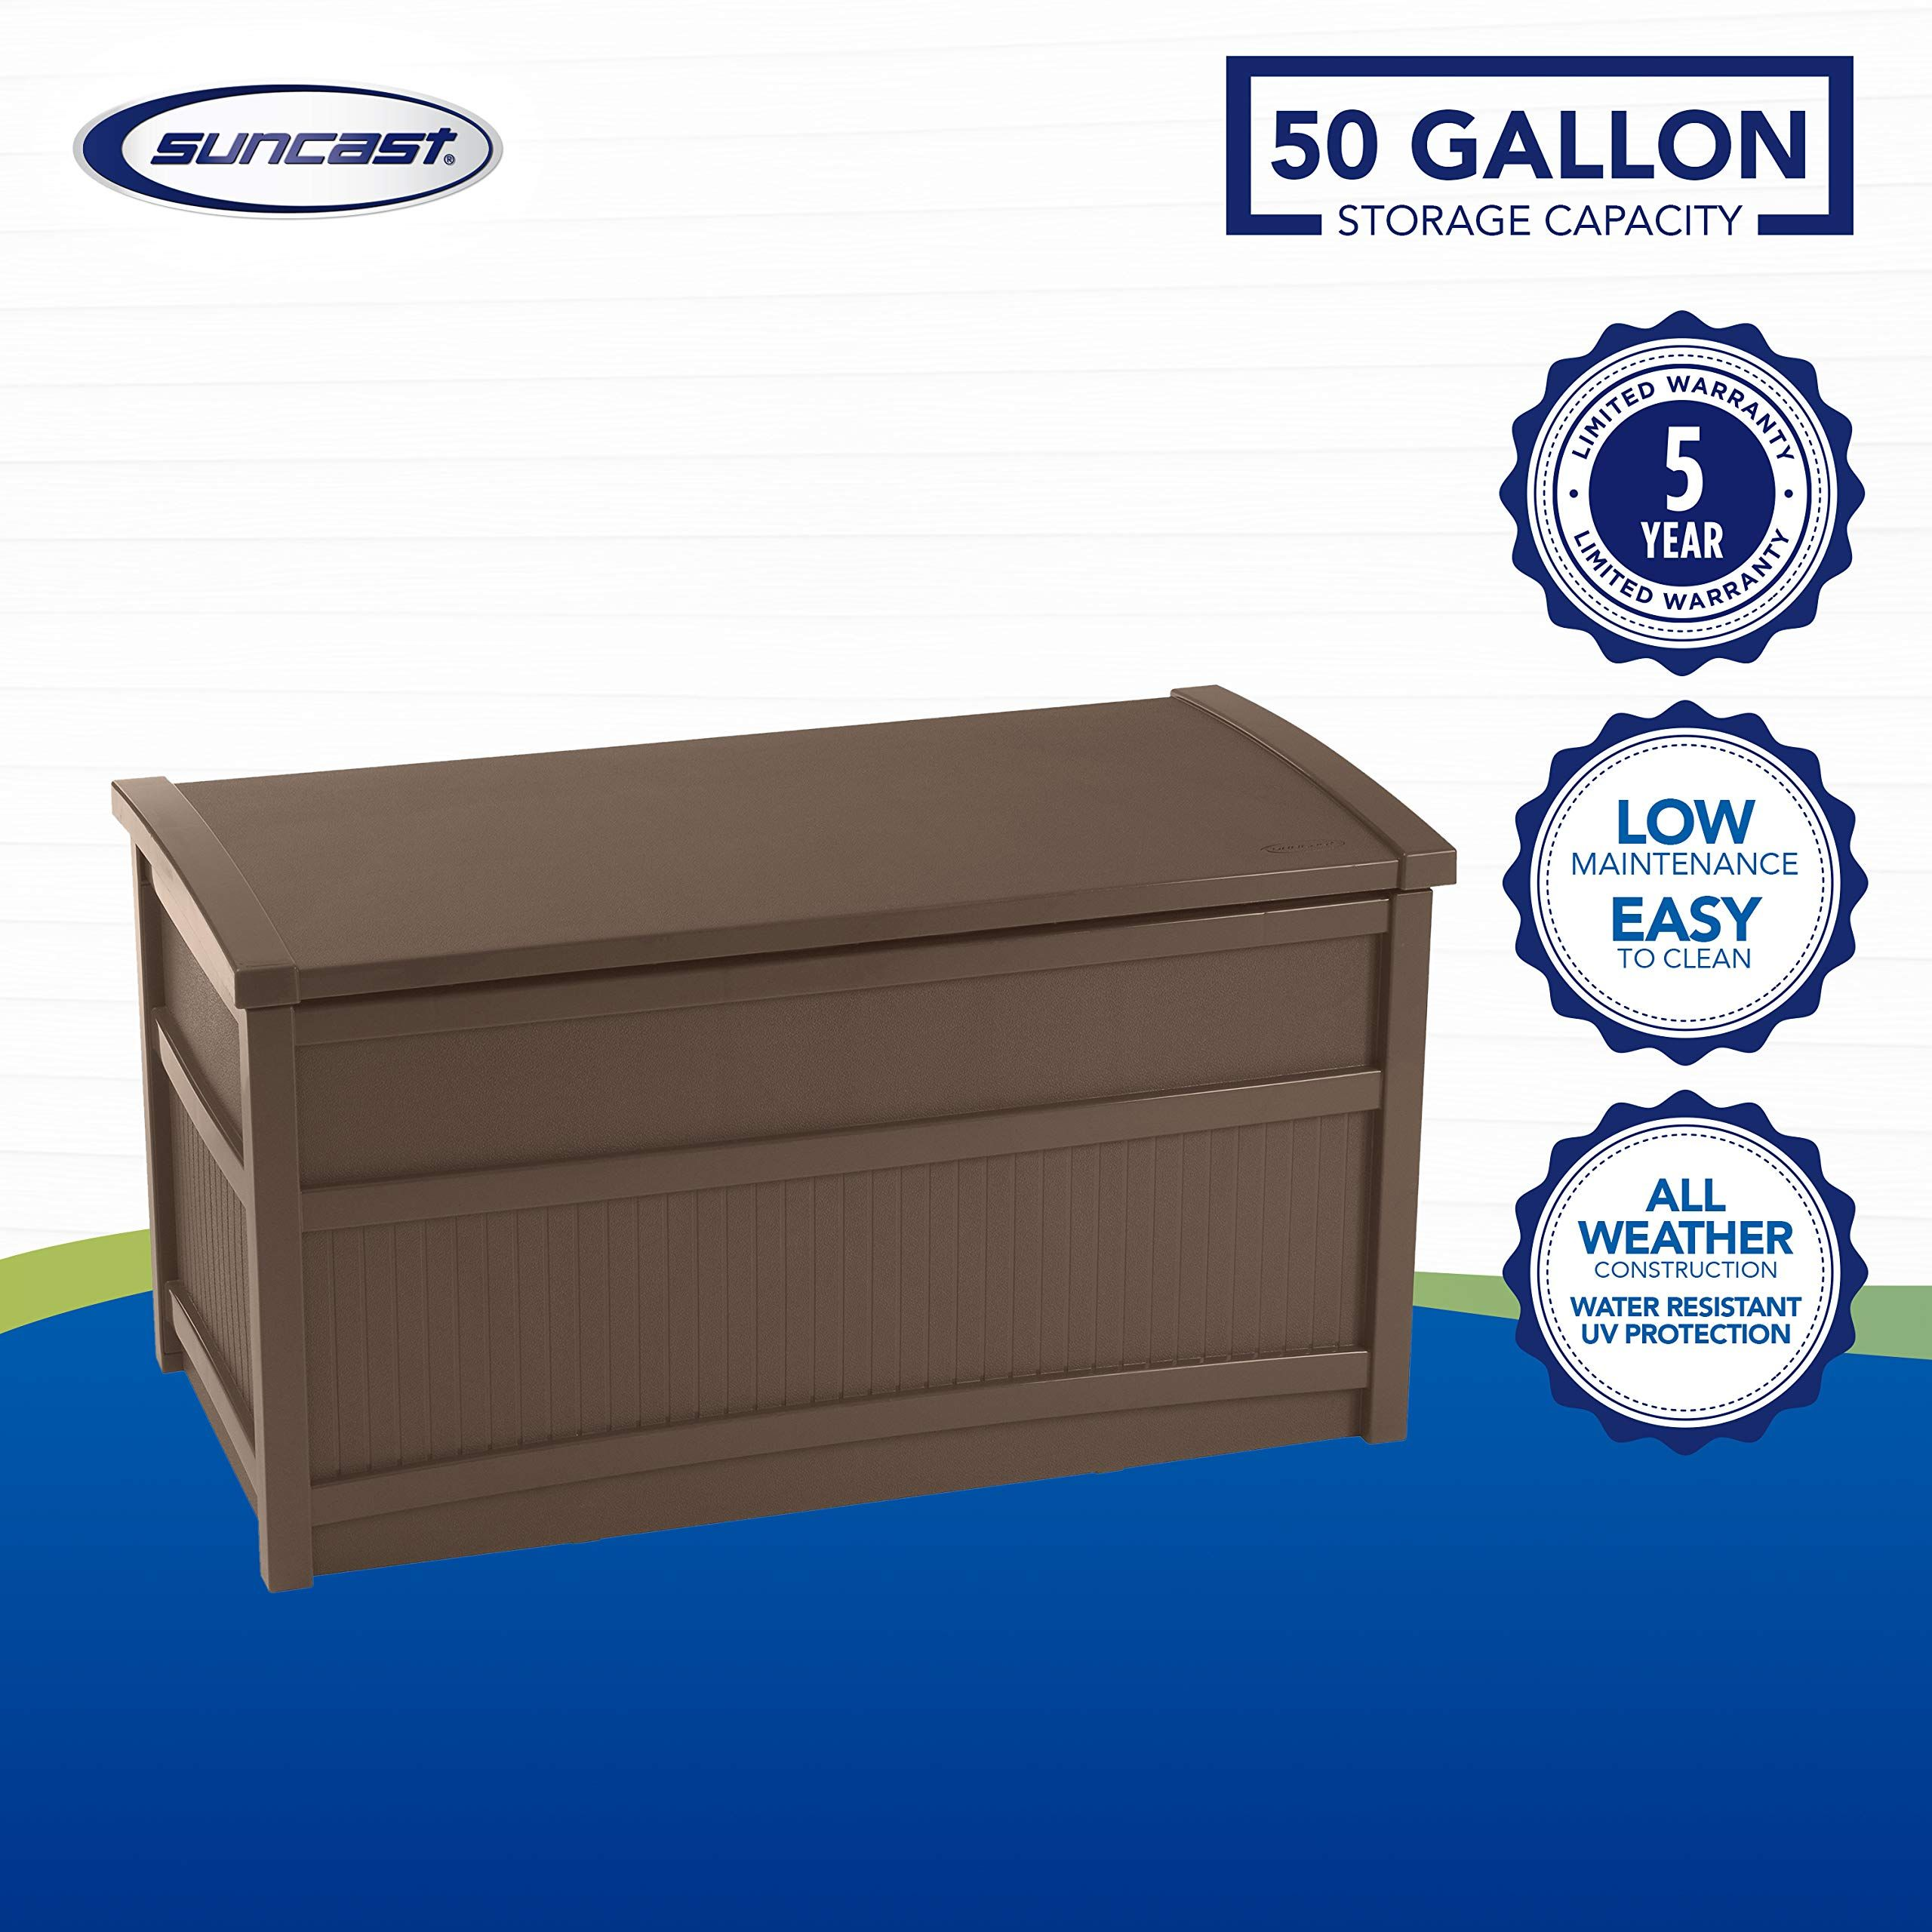 Suncast 50 Gallon Medium Deck Box Lightweight Resin Indoor Outdoor Storage Container And Seat For Patio Outdoor Storage Resin Outdoor Storage Resin Deck Box